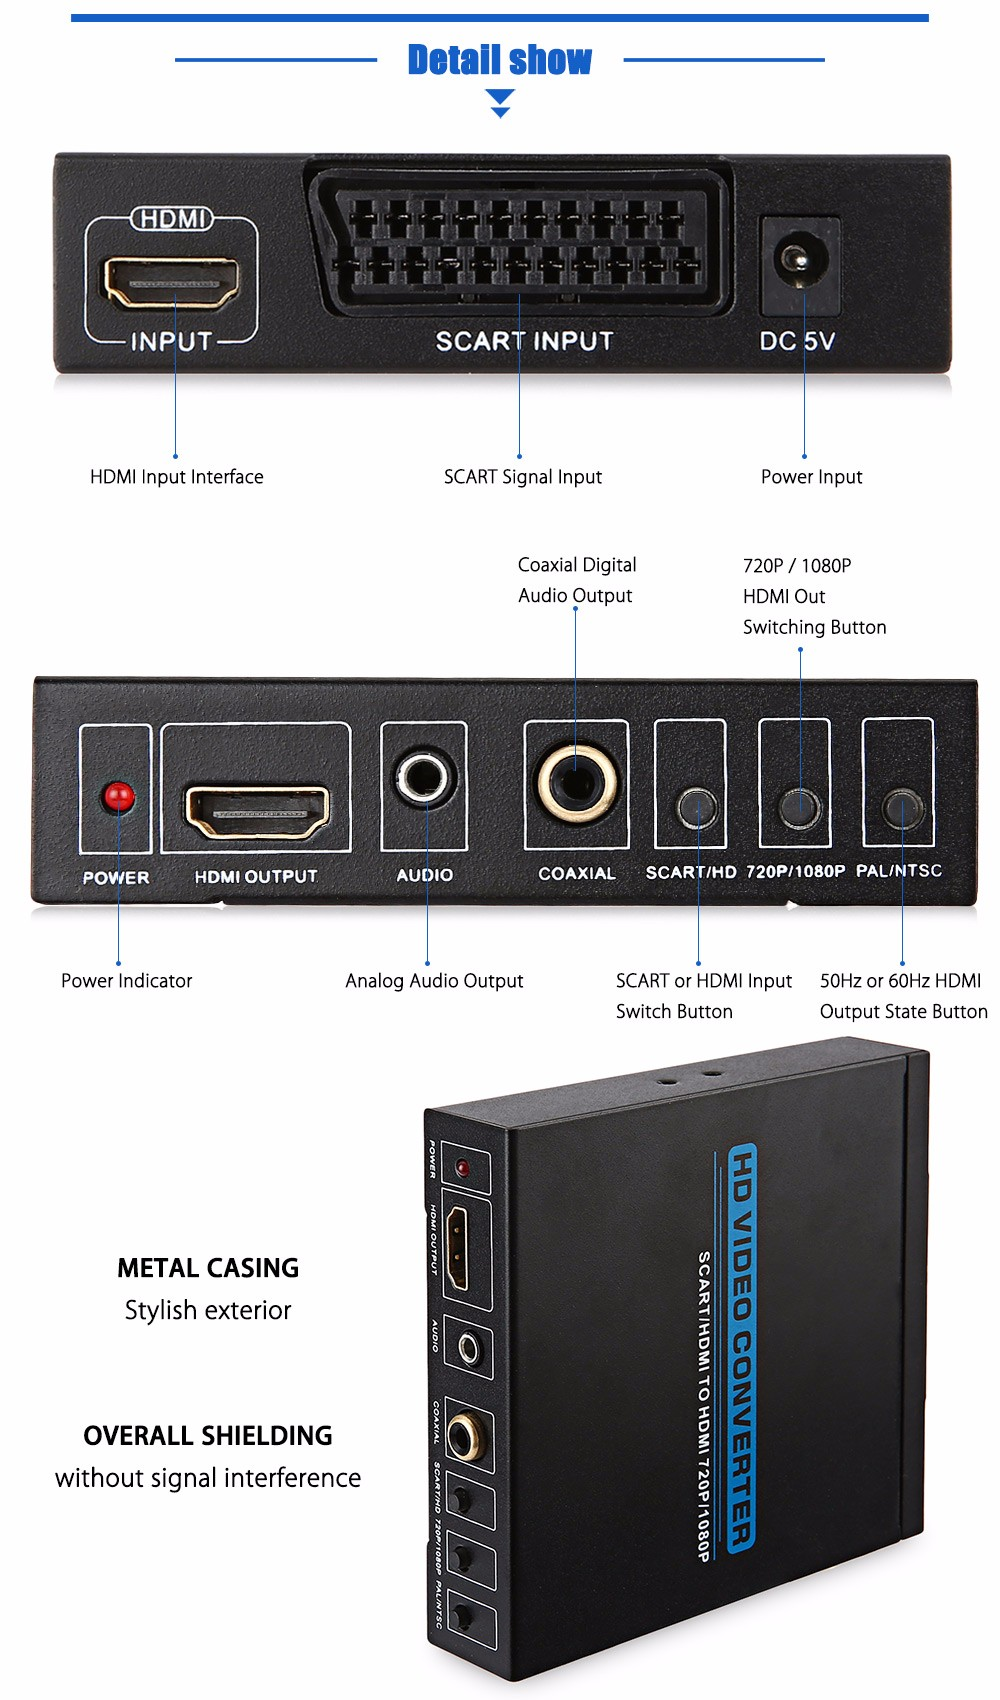 Br 2503  Hdmi Connector Pinout Audio Wiring Diagram